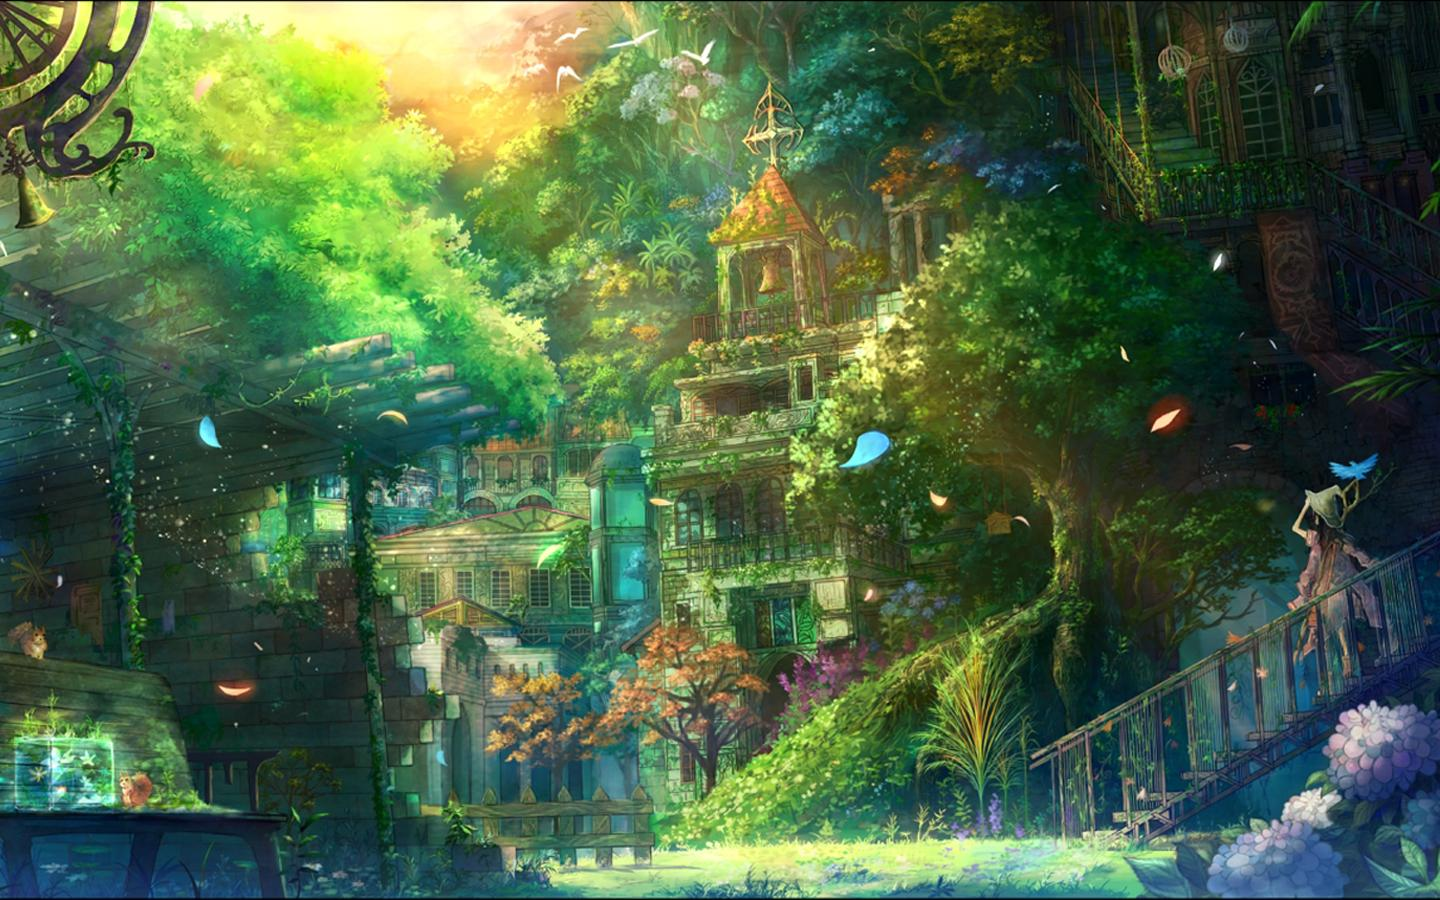 51 anime wallpaper background Pictures